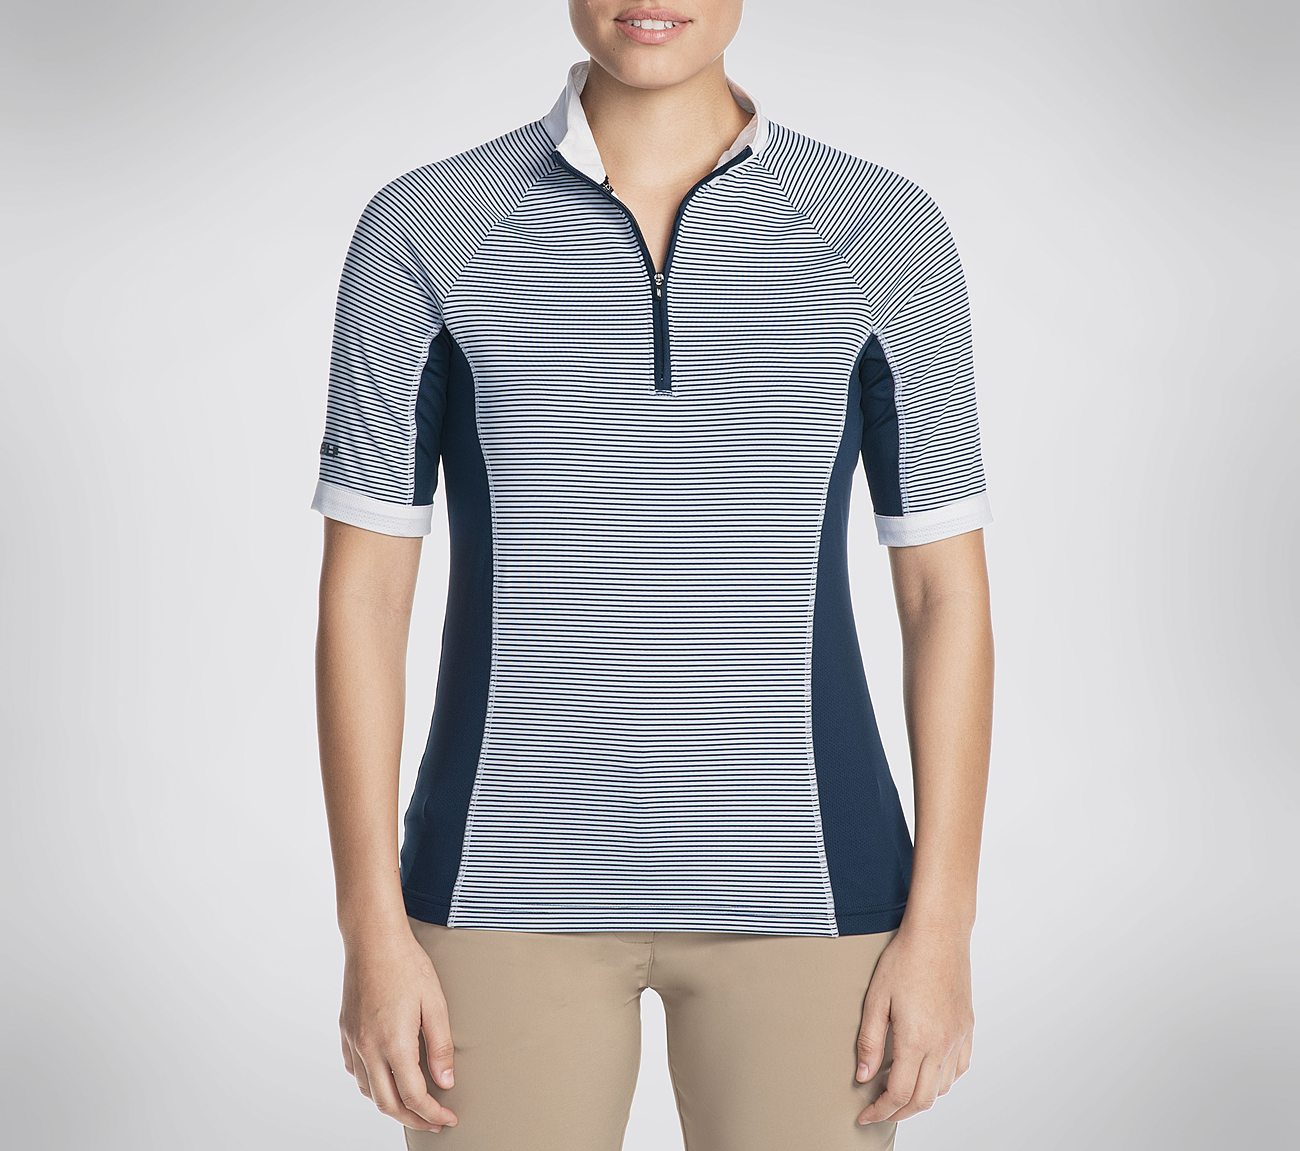 Skechers GO GOLF Fairway Mid Sleeve Polo Shirt